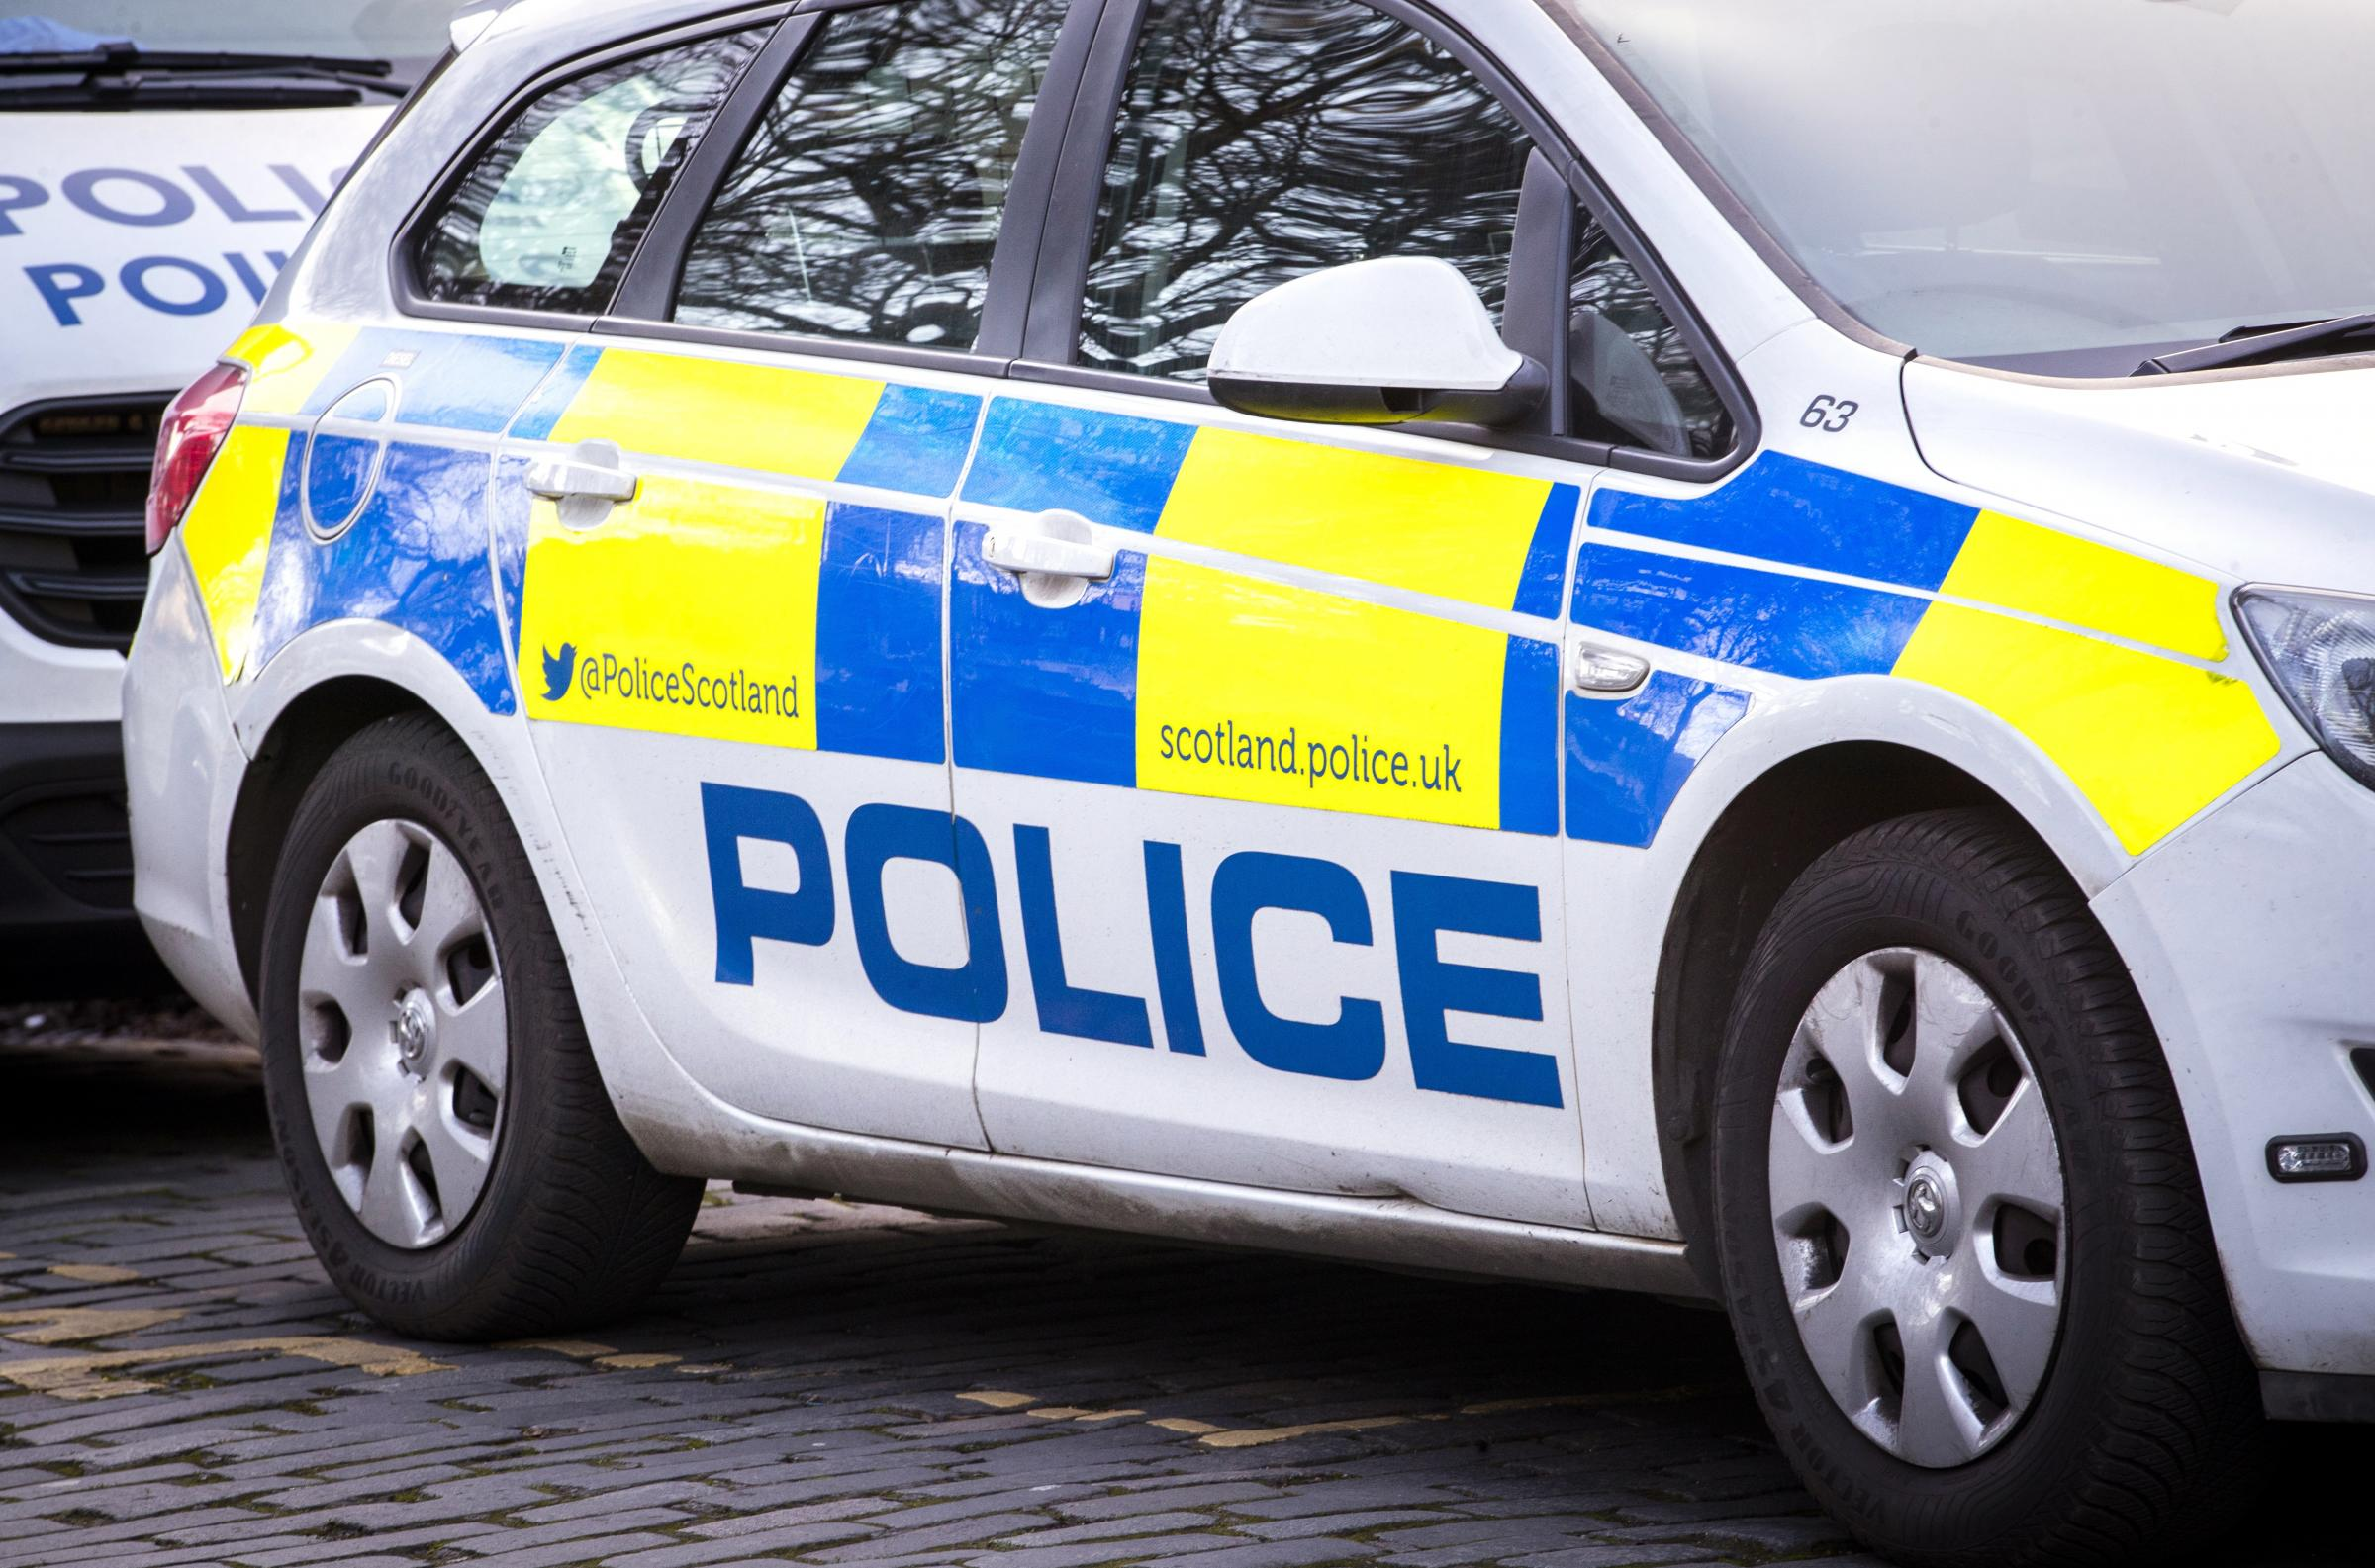 Suspect arrested and charged after man 'struck by car' in Fraserburgh